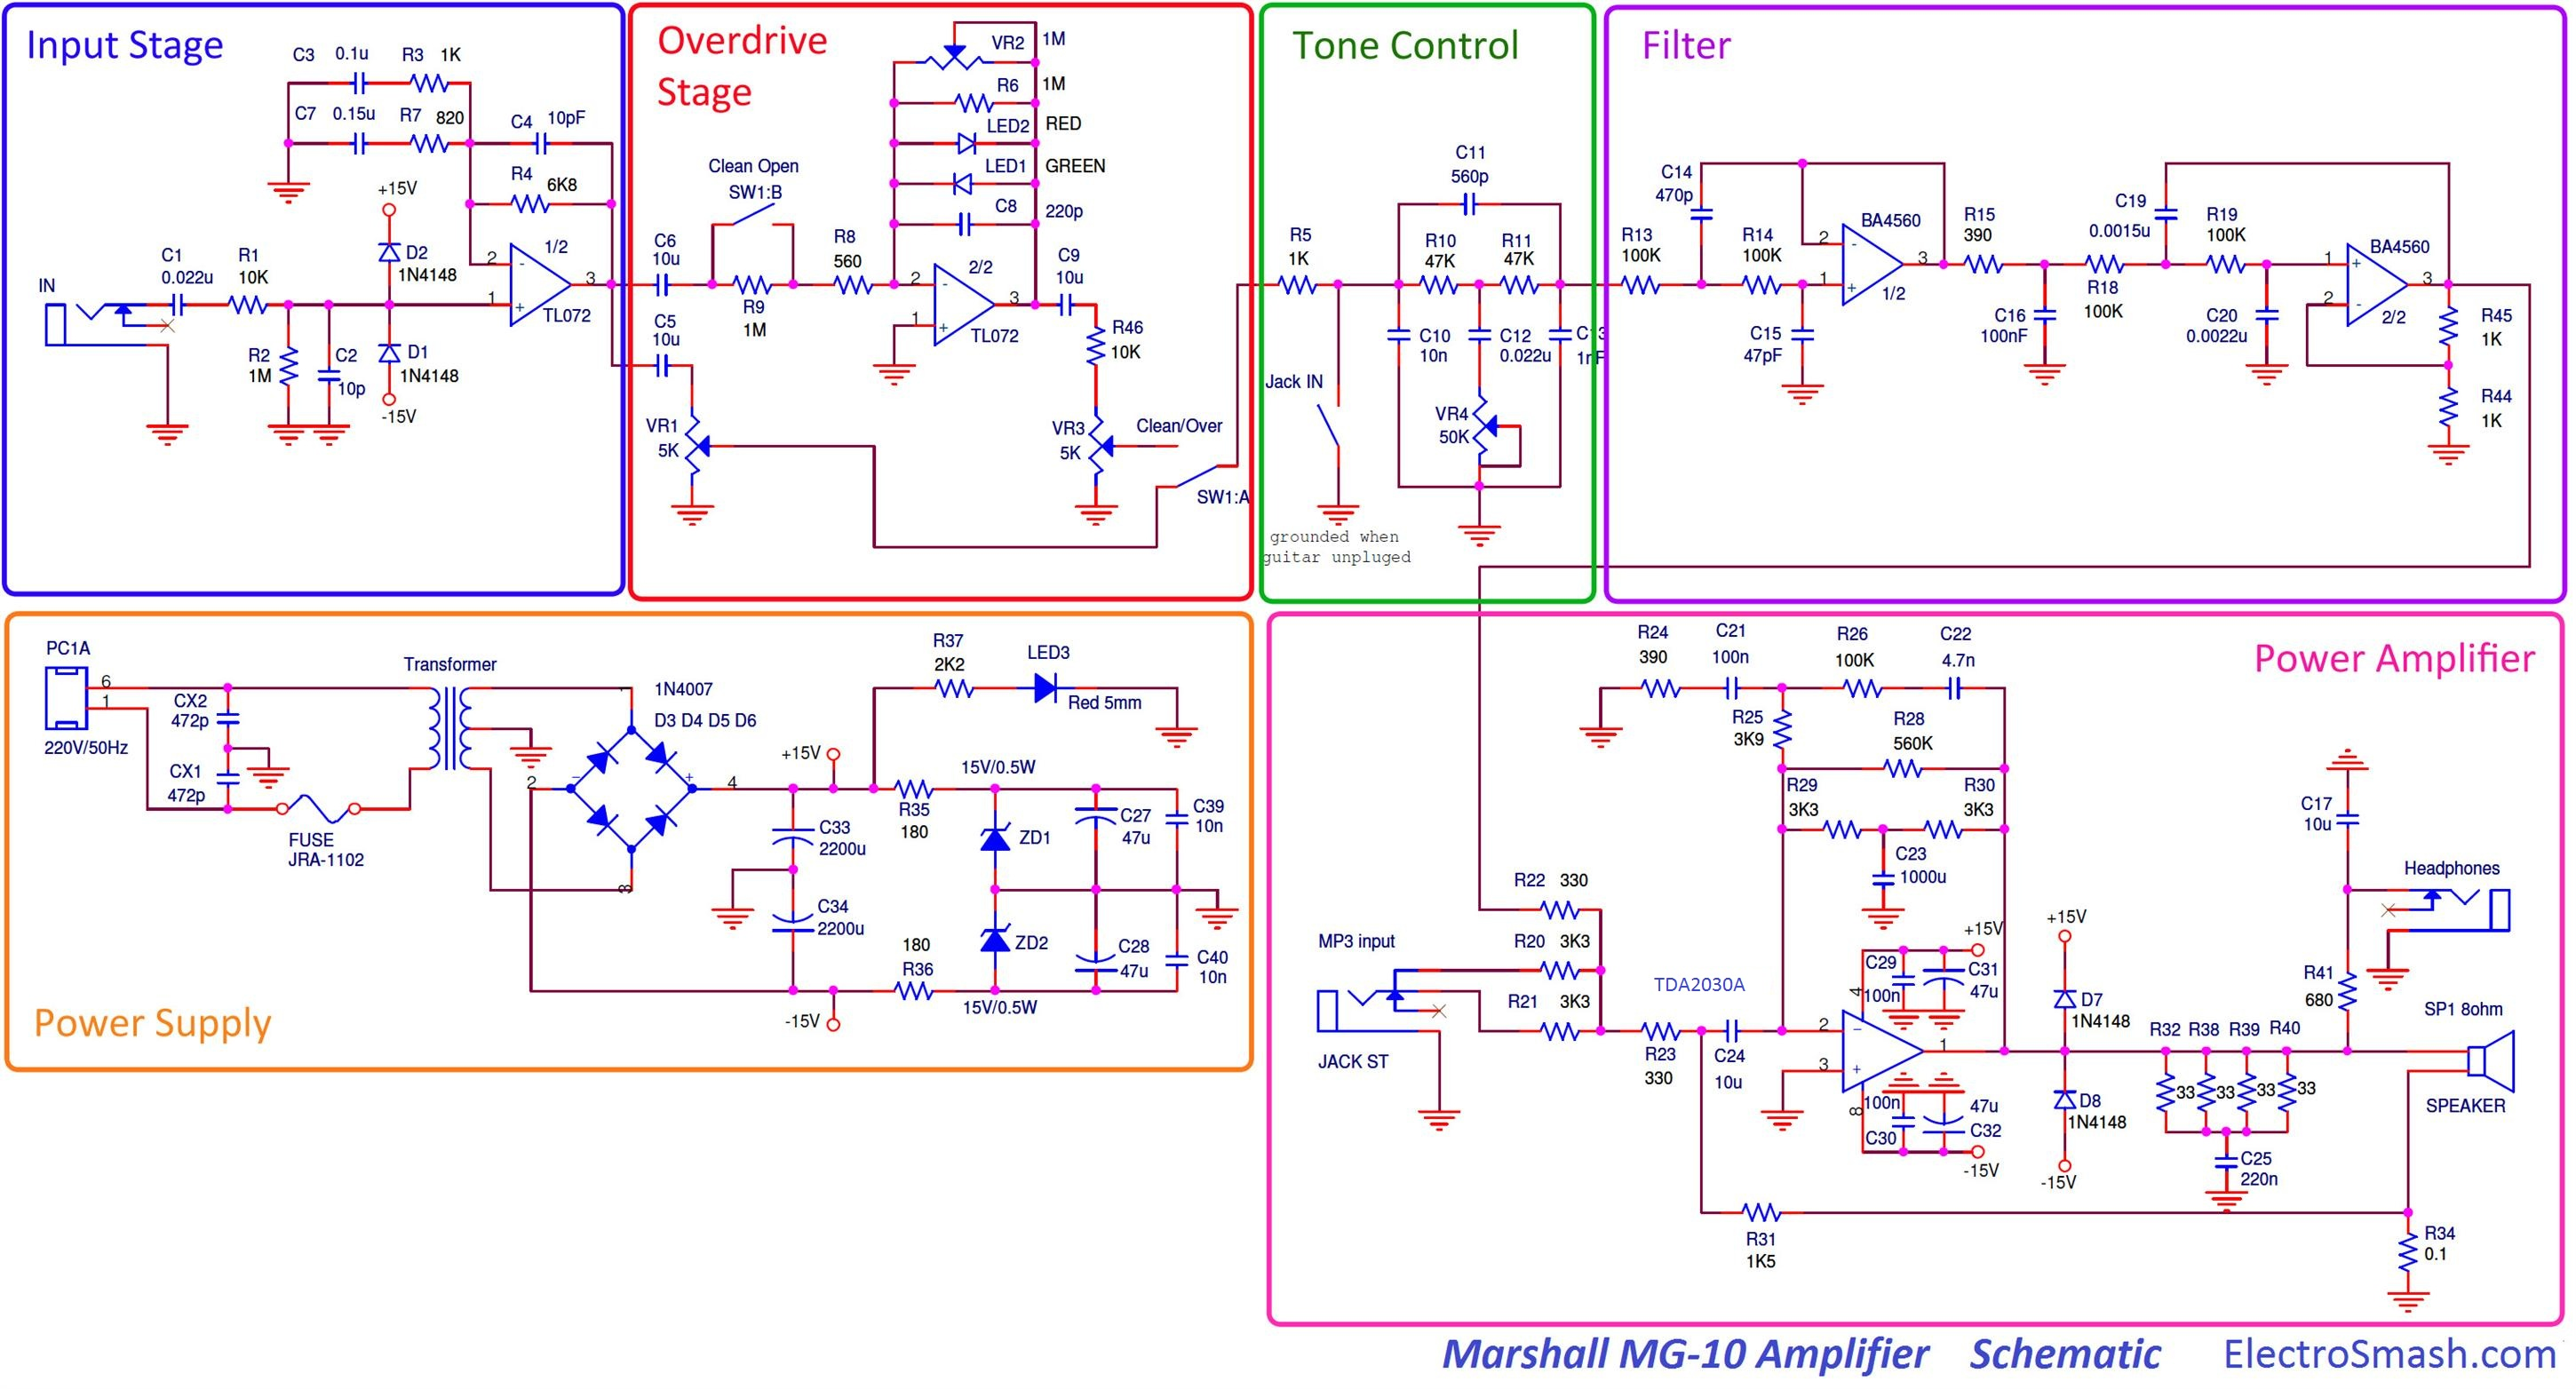 electrosmash marshall mg10 analysis Car Amplifier Install Diagram solid state amp wiring diagram